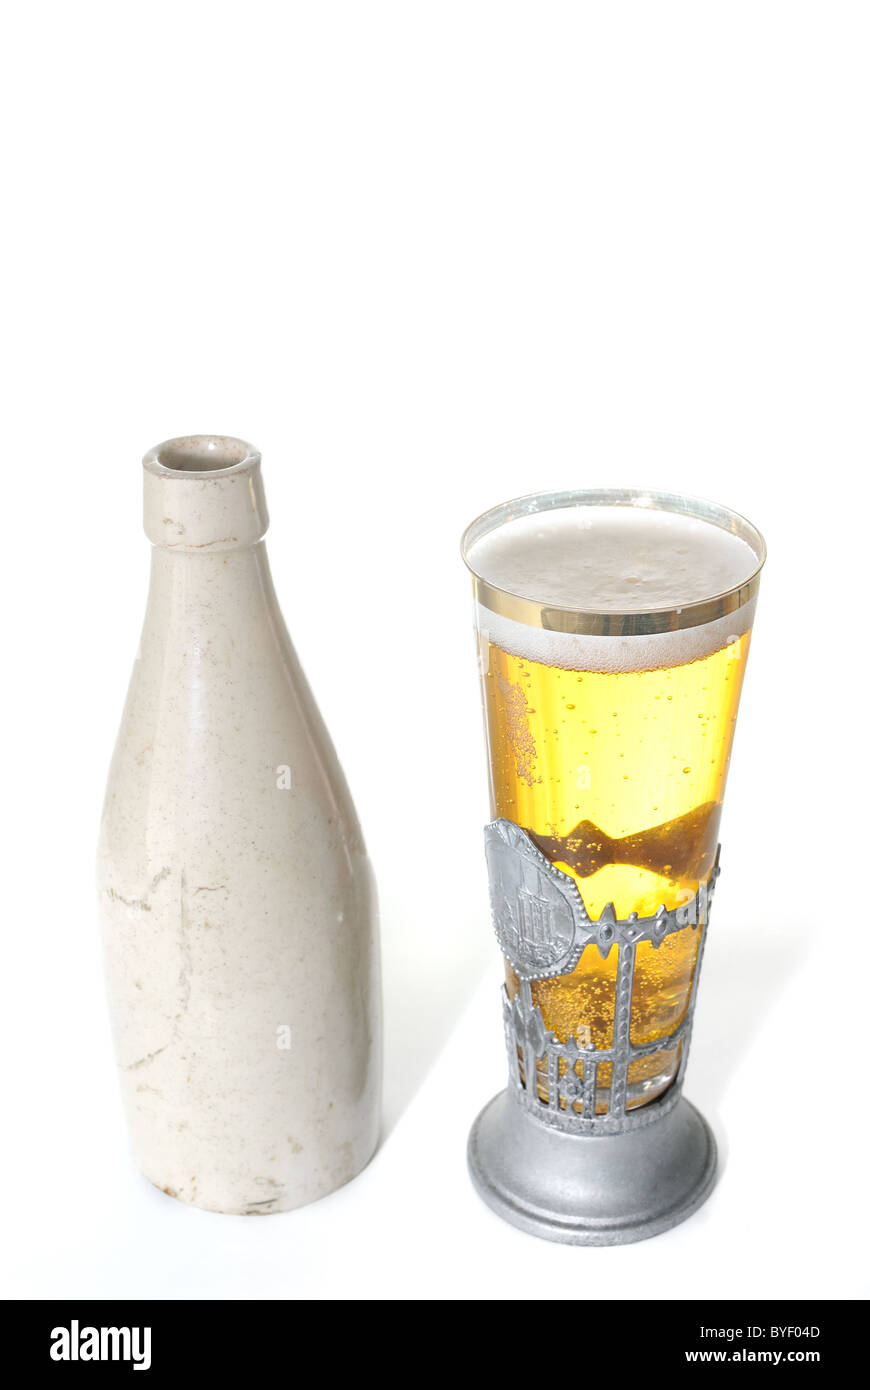 d343ec79d6e Old Ceramic Bottle and Beer in a uniqe stein glass isolated on a white  background.